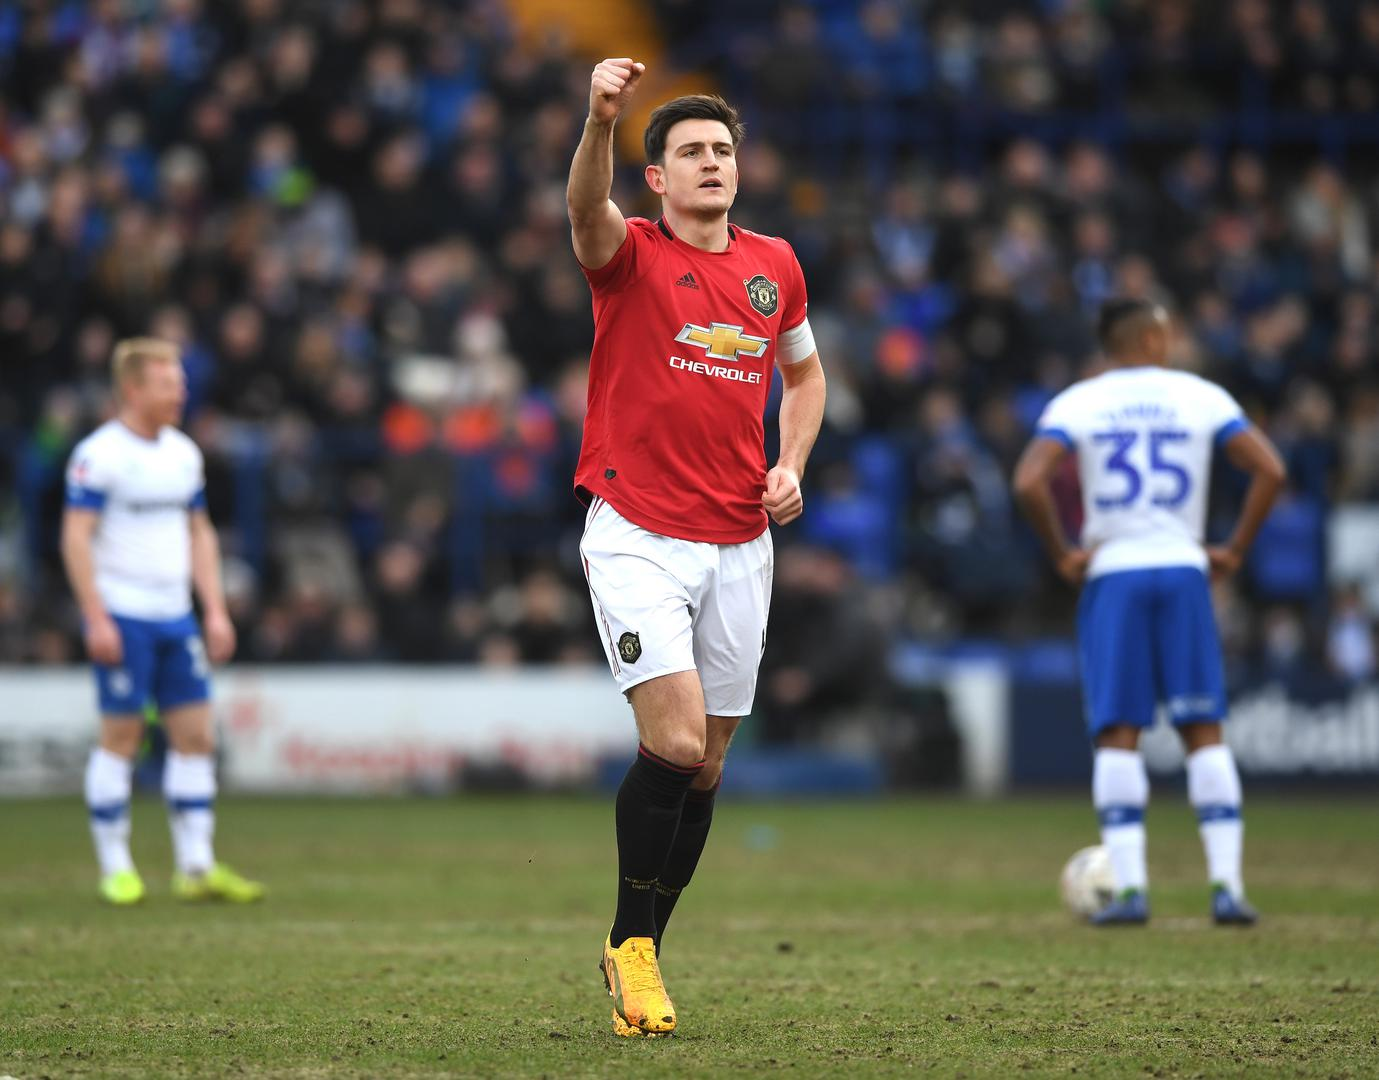 Harry Maguire holds his hand up in celebration against Tranmere.